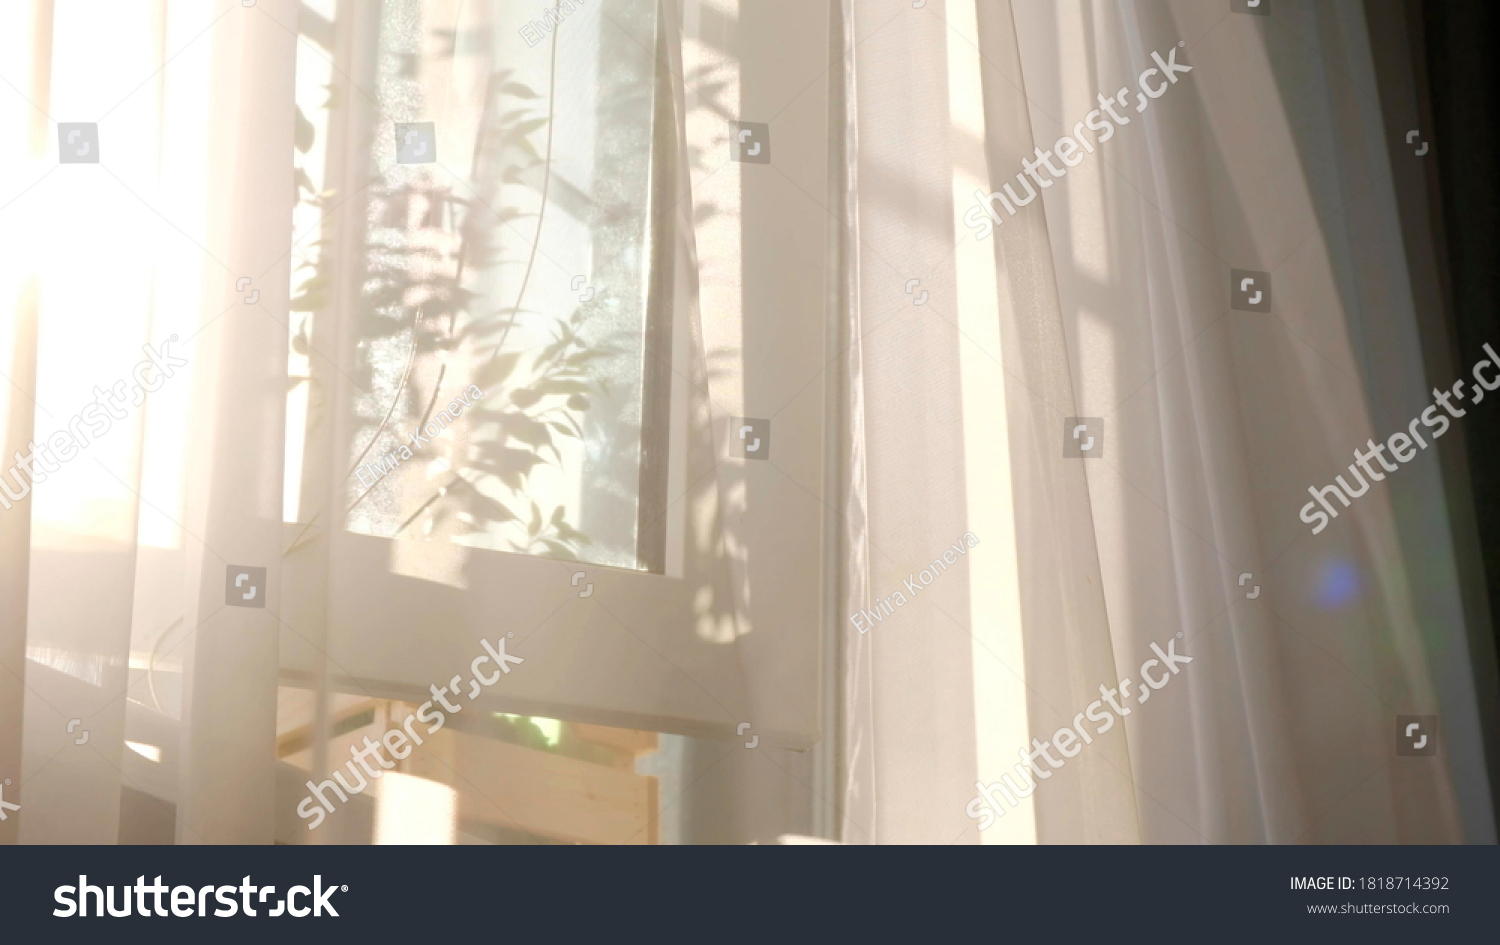 wind blows through the open window in the room. Waving white tulle near the window. Morning sun lighting the room, shadow background overlays. #1818714392